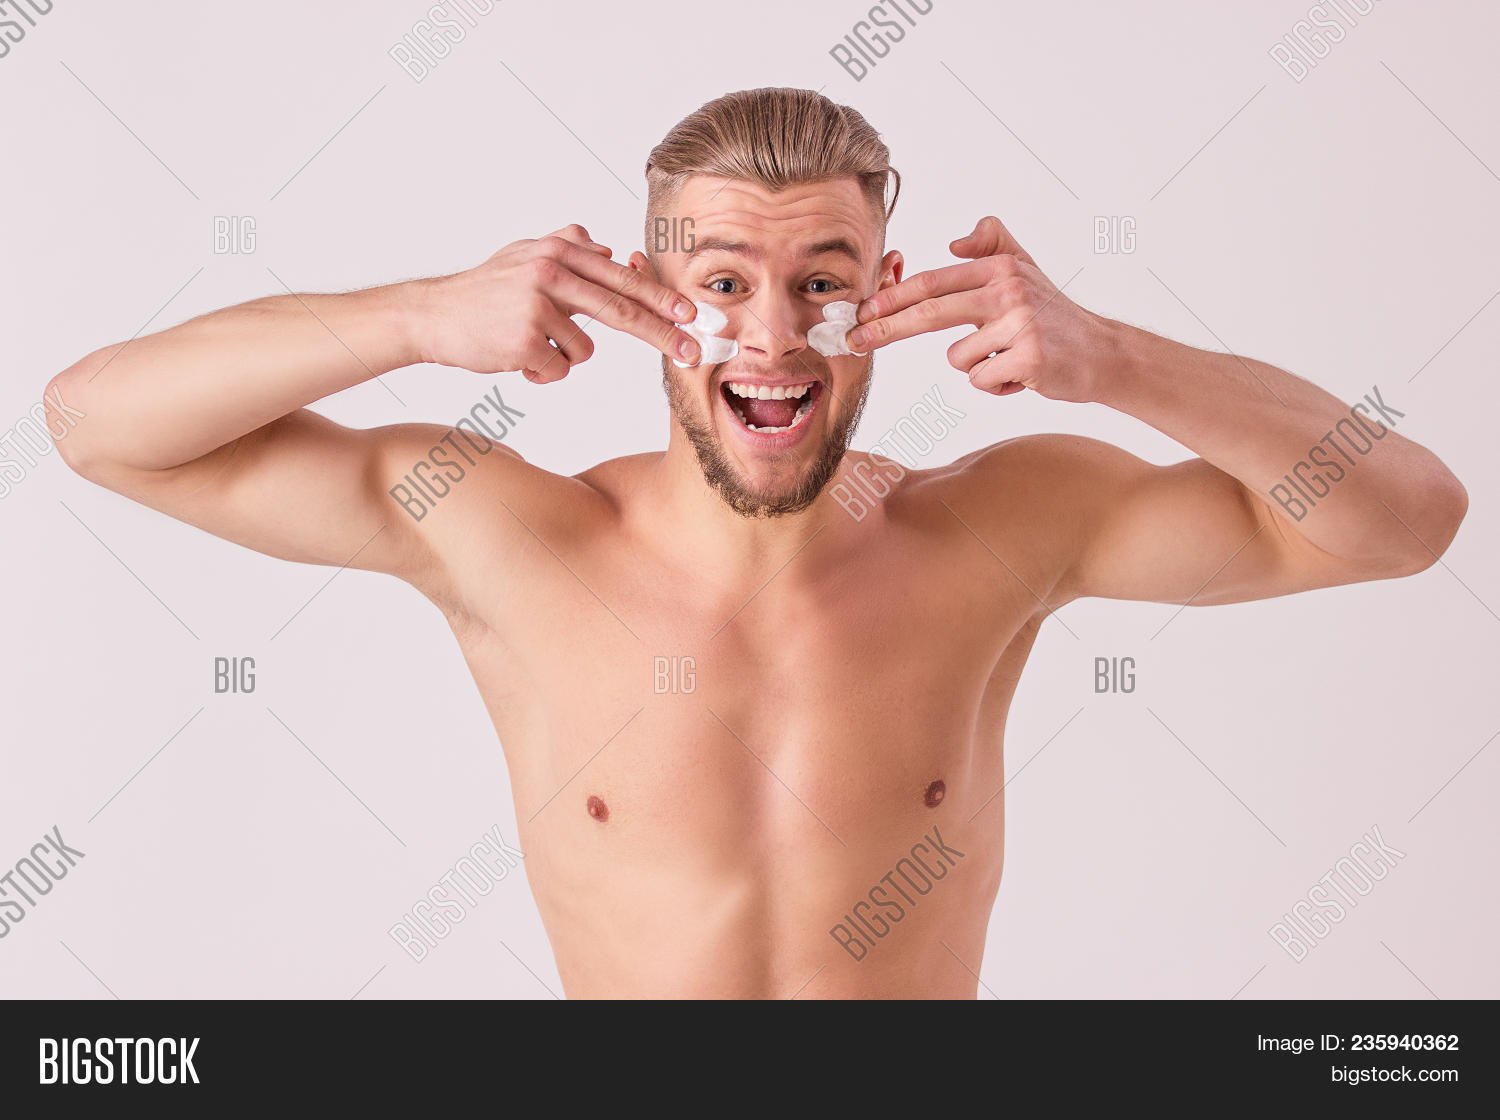 Hands behind neck male nude